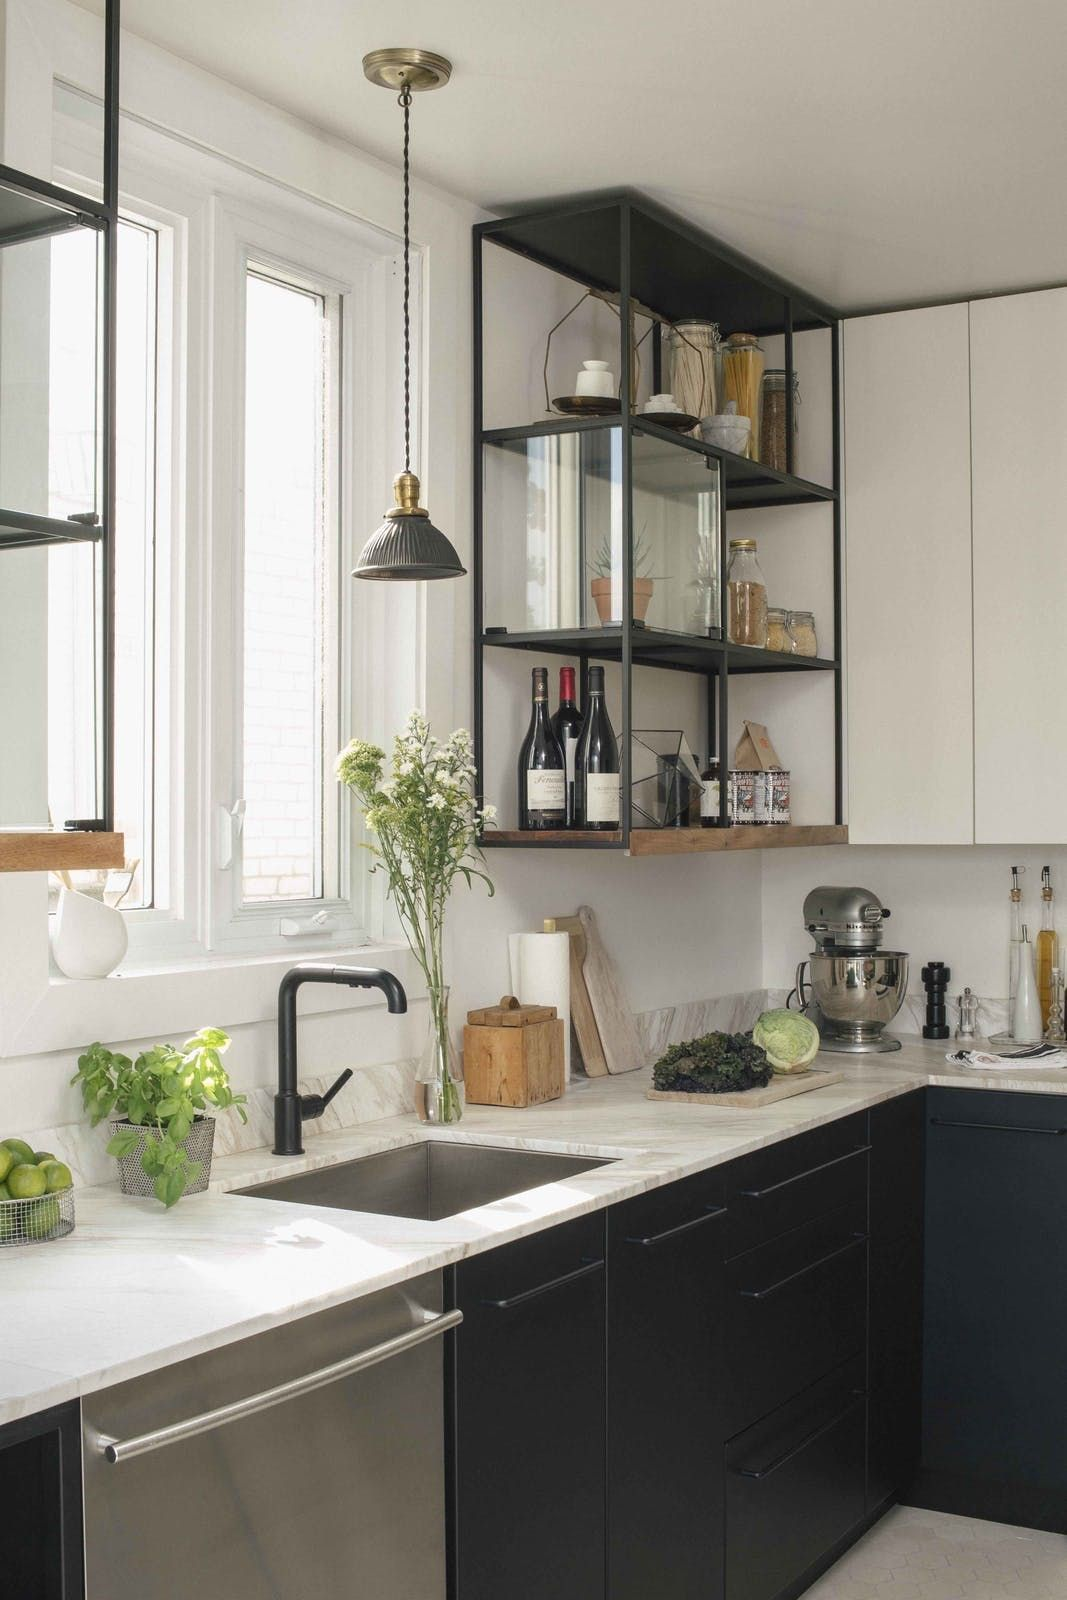 Inspiring Kitchens You Won't Believe are IKEA | Modern cabinets ...